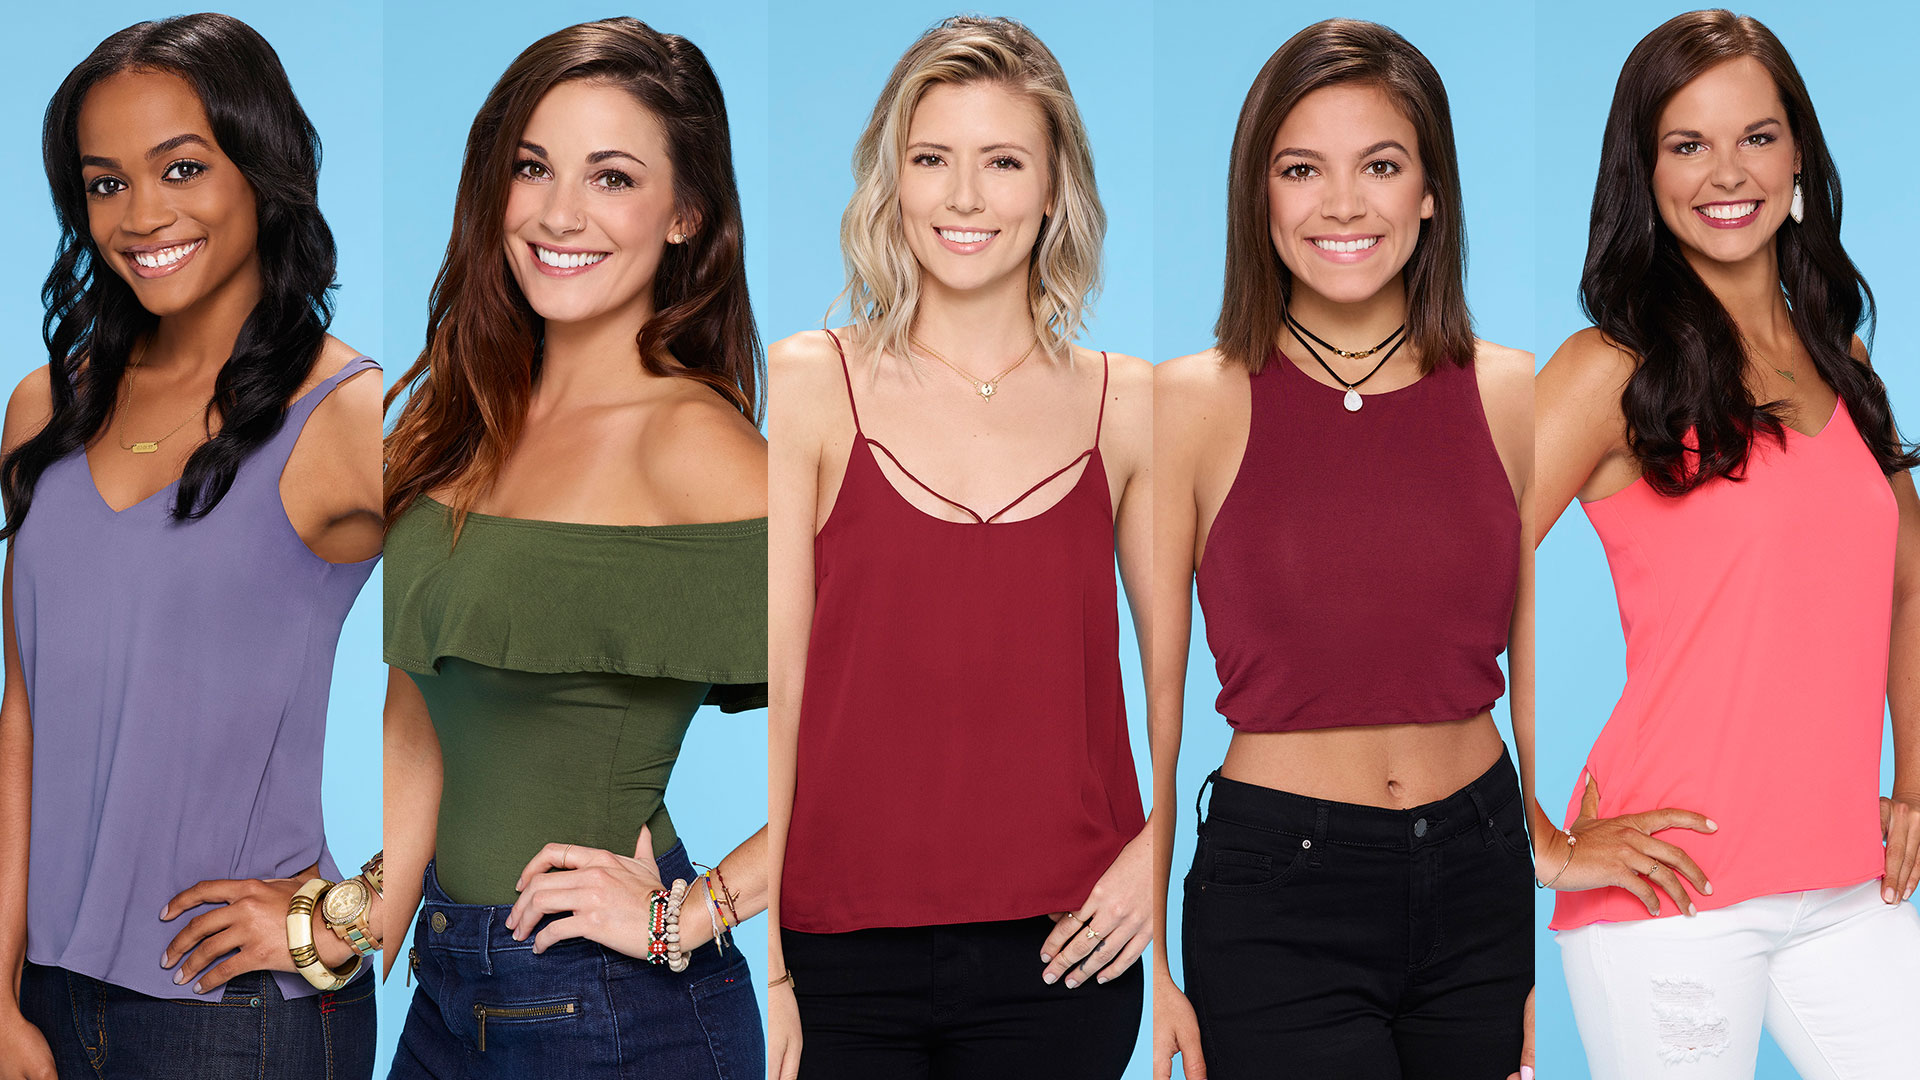 Rachel, Liz, Danielle, Brittany, Briana on The Bachelor